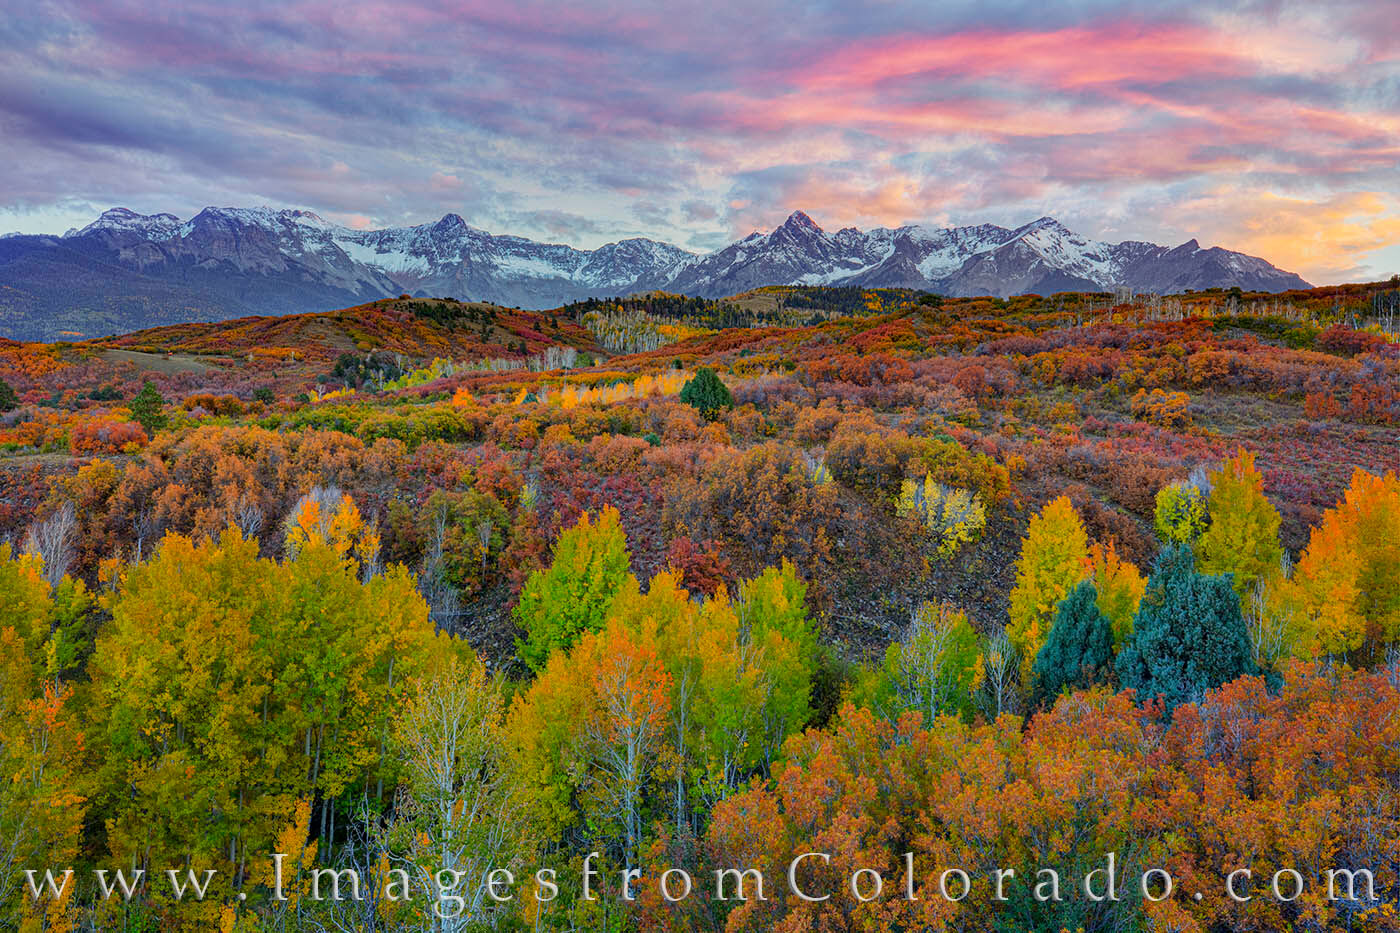 The mountain vista of the Dallas Divide shows off Autumn colors in early October. Green, gold, orange, and red of scrub brush...